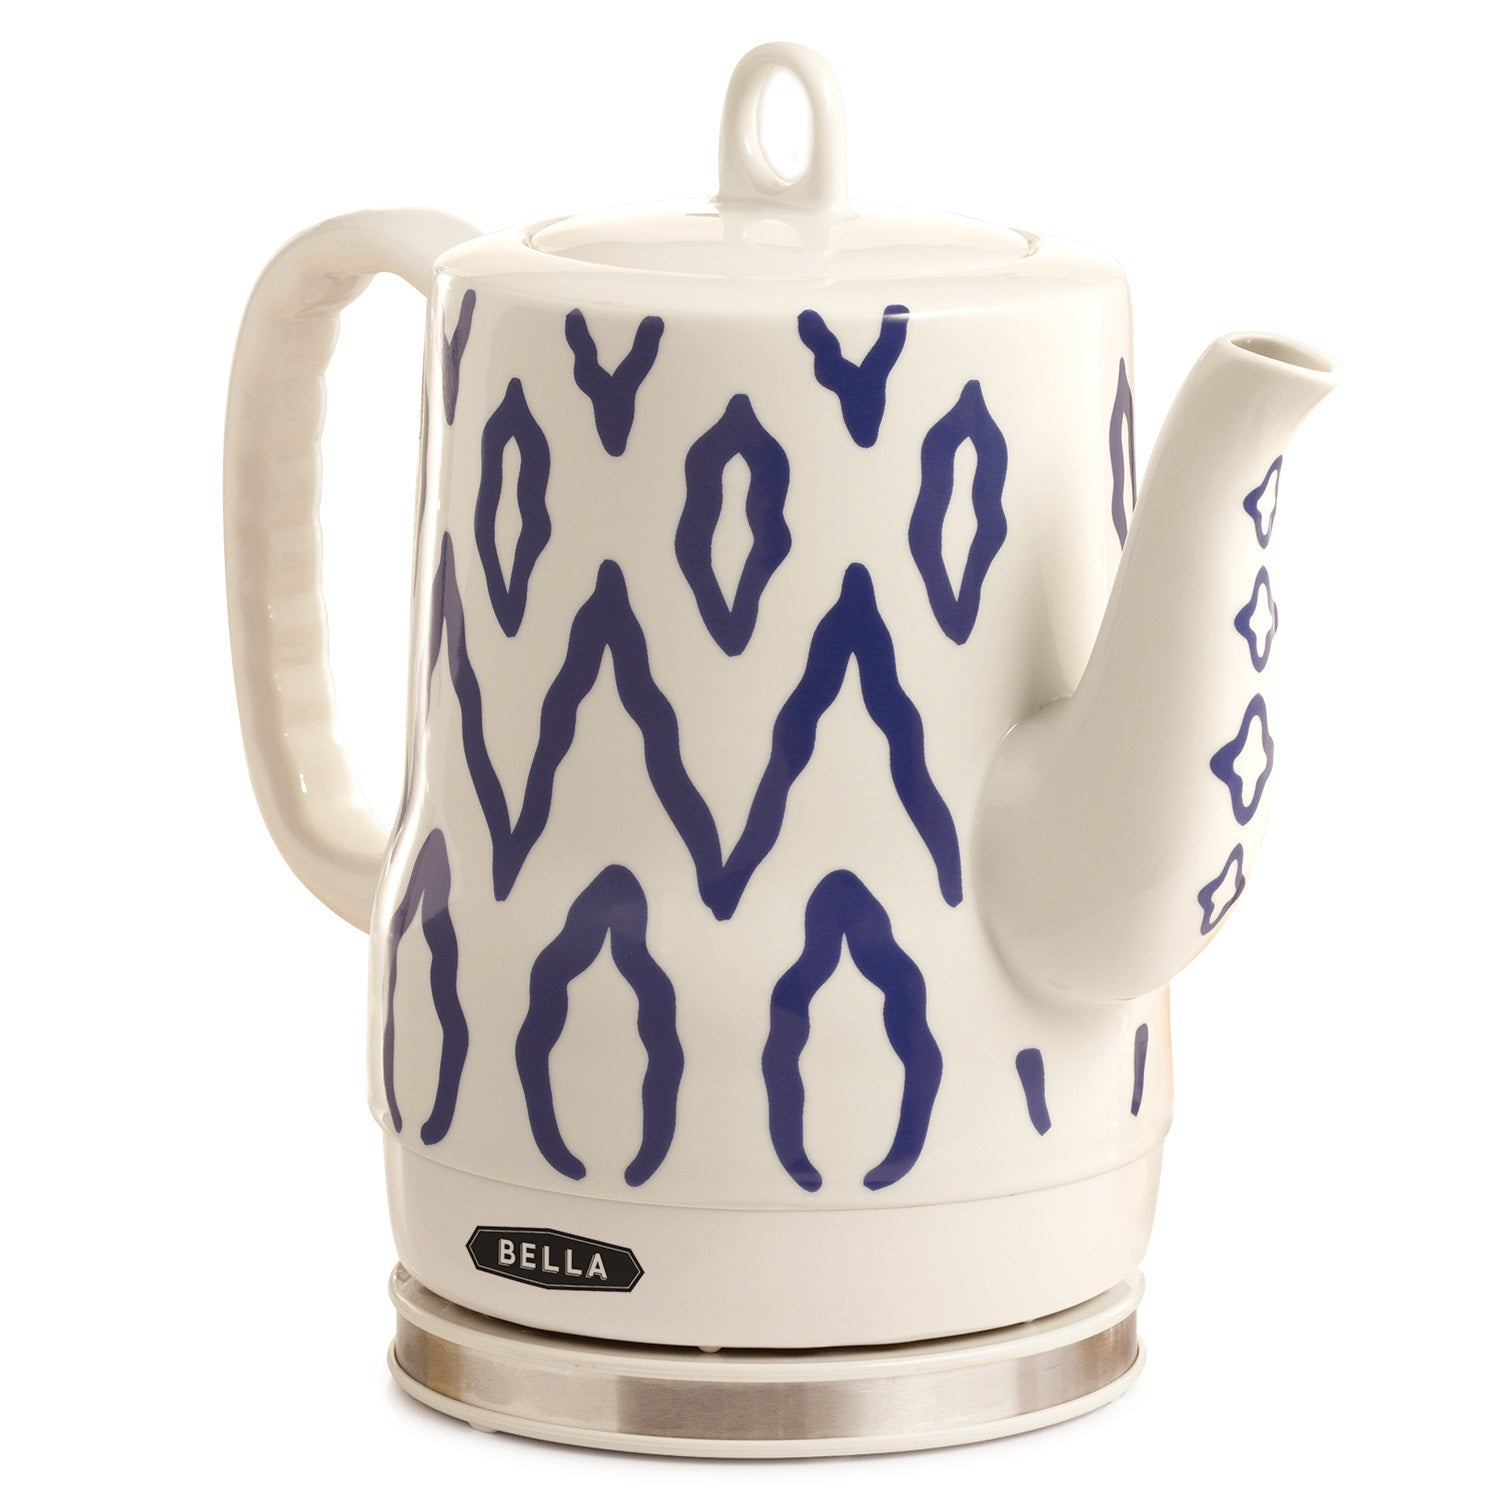 Bella Blue Aztec Ceramic Kettle